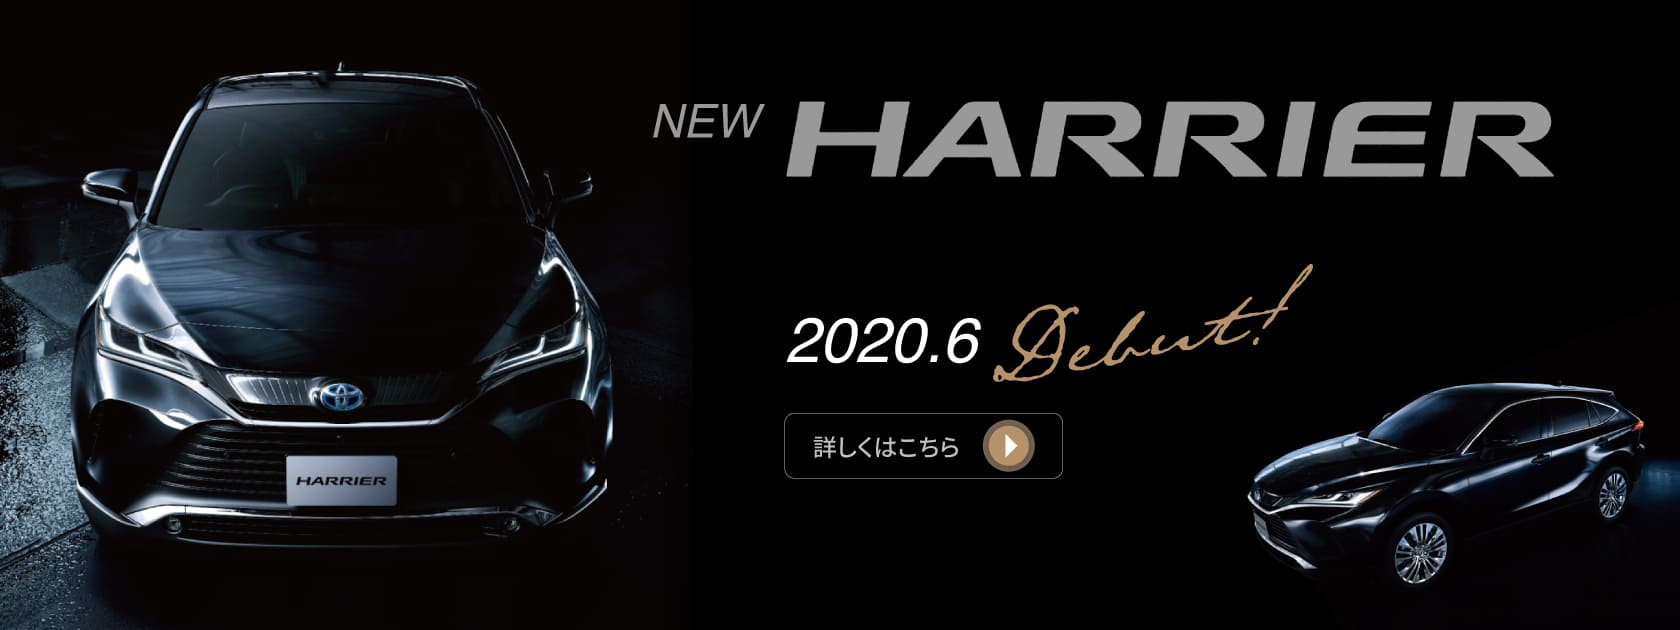 NEWハリアーDebut!2020.6